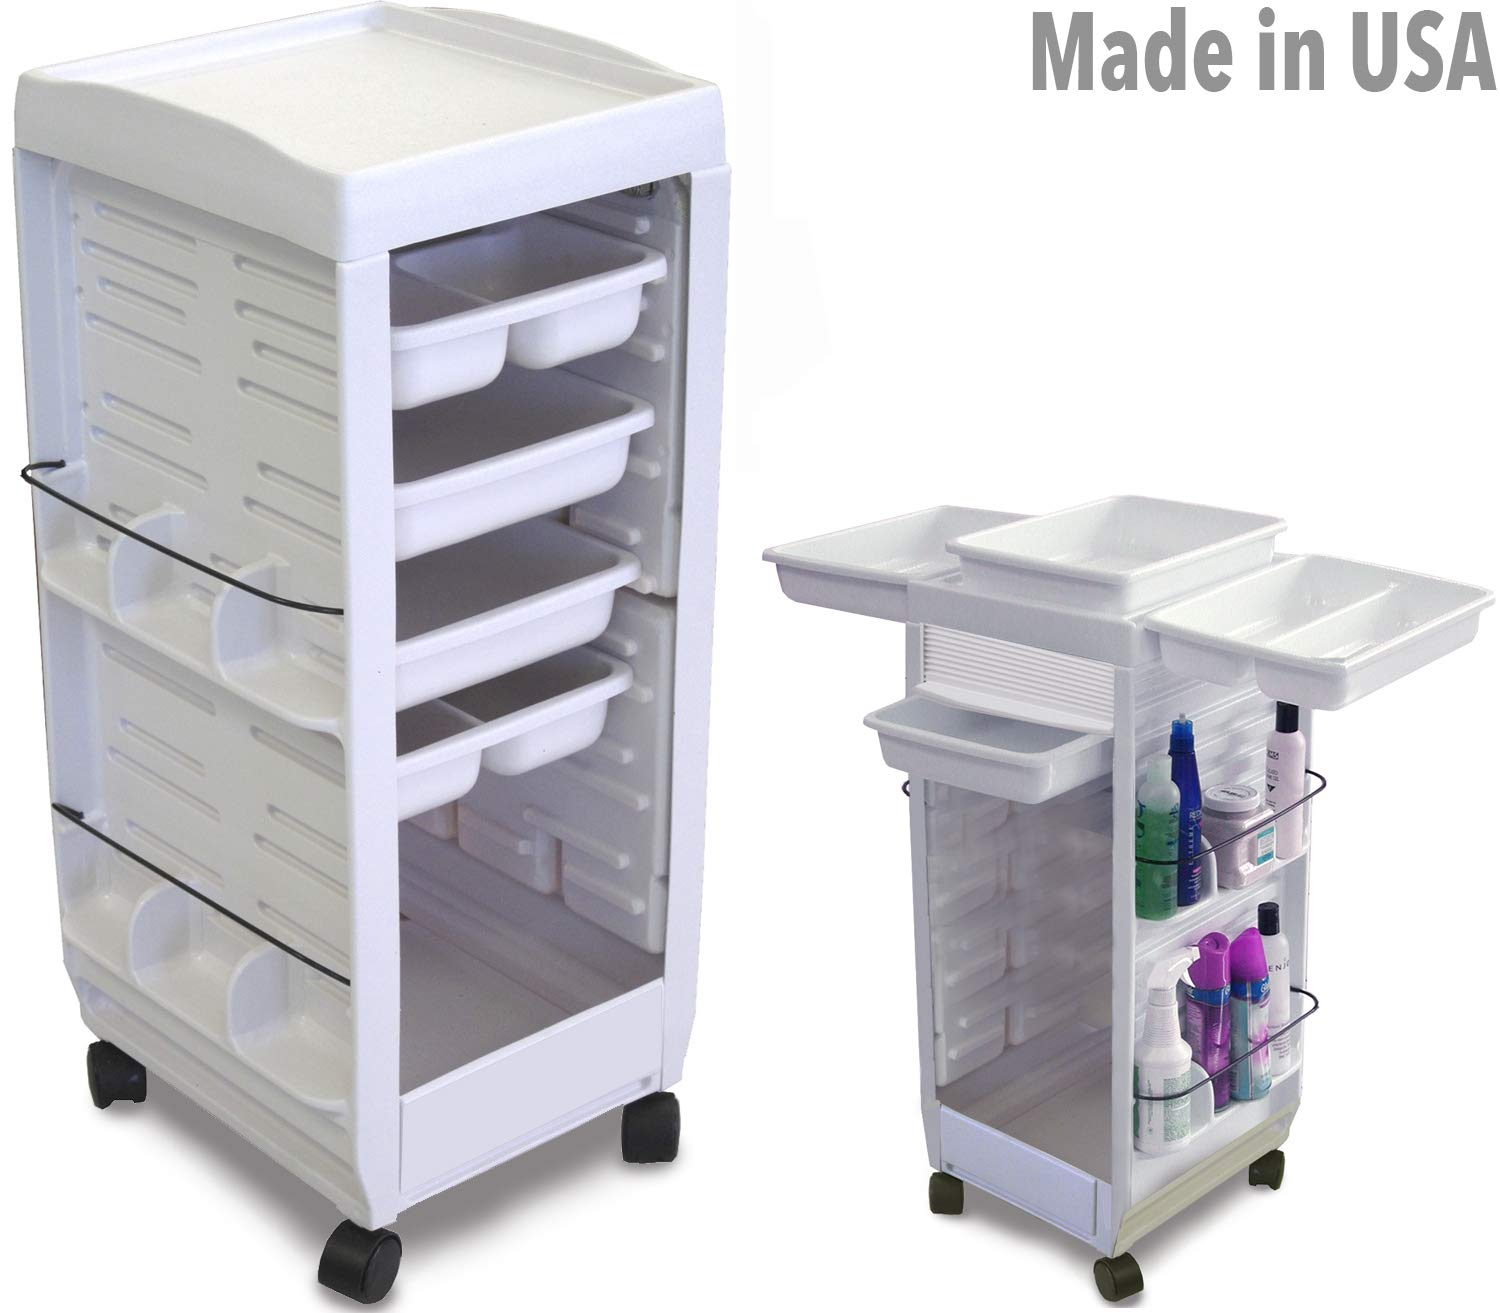 C113E-M Medical, Physician, Dentist Utility Roll-About Roller Cart Trolley Non Lockable White Made in USA by Dina Meri by Dina Meri